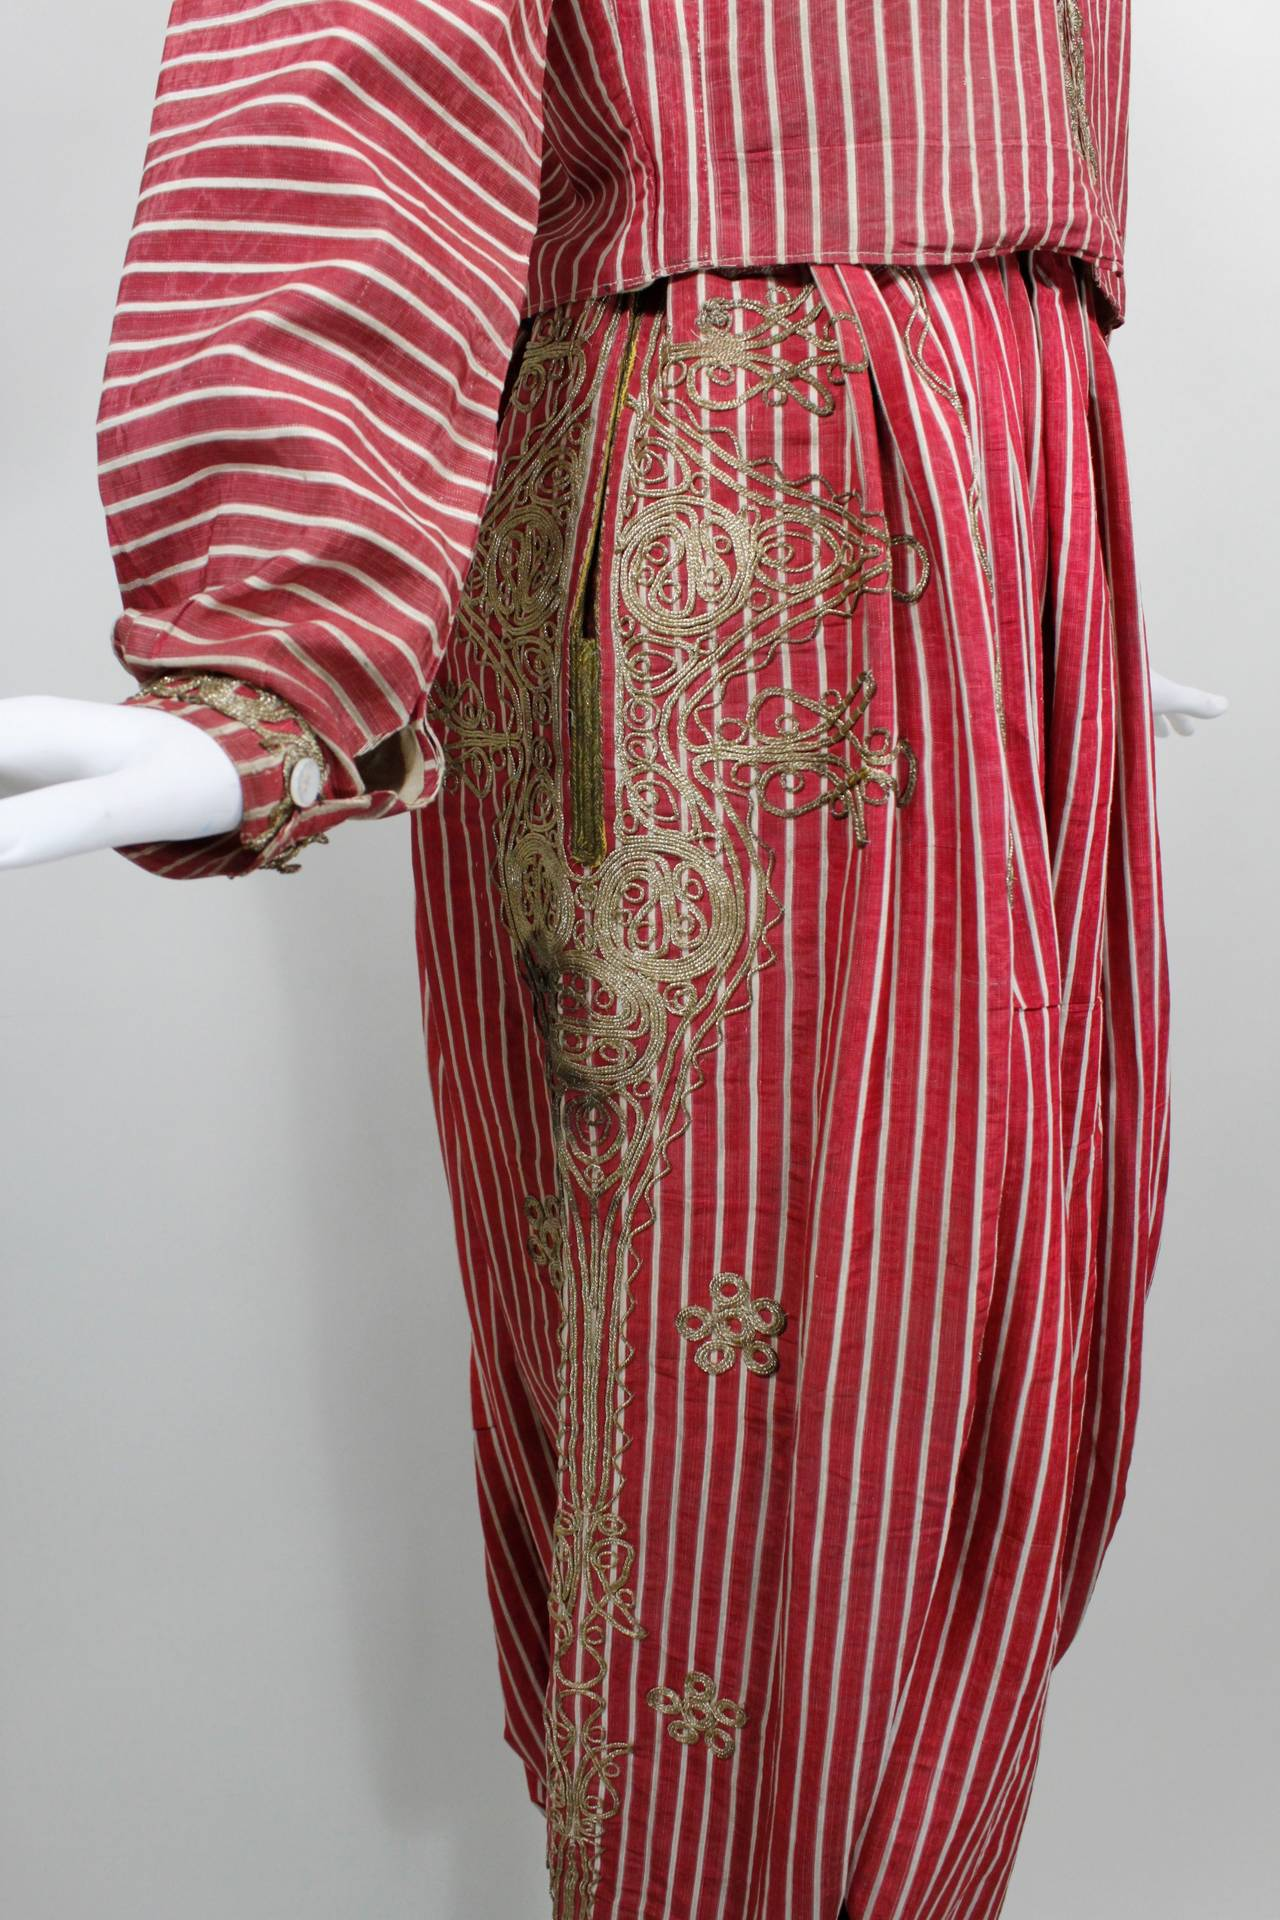 Turkish Silk Moire Striped Harem Pant Ensemble with Bullion Embroidery 7